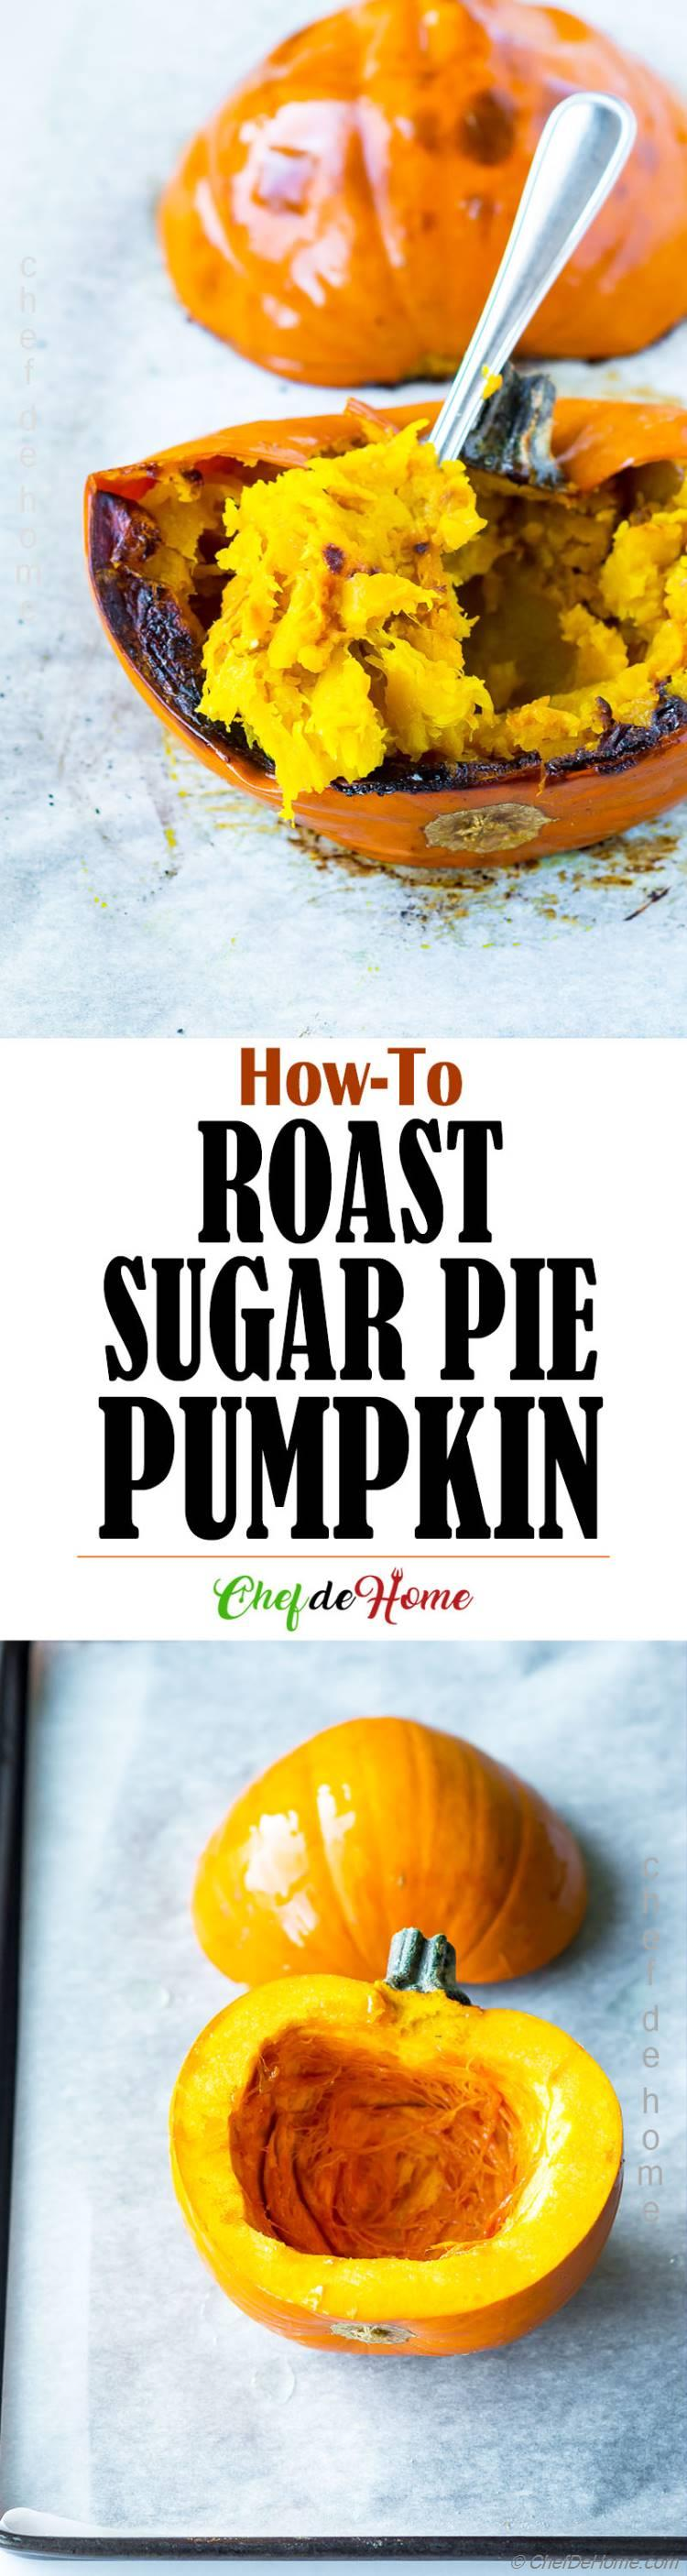 A complete guide to roast pumpkin and make puree